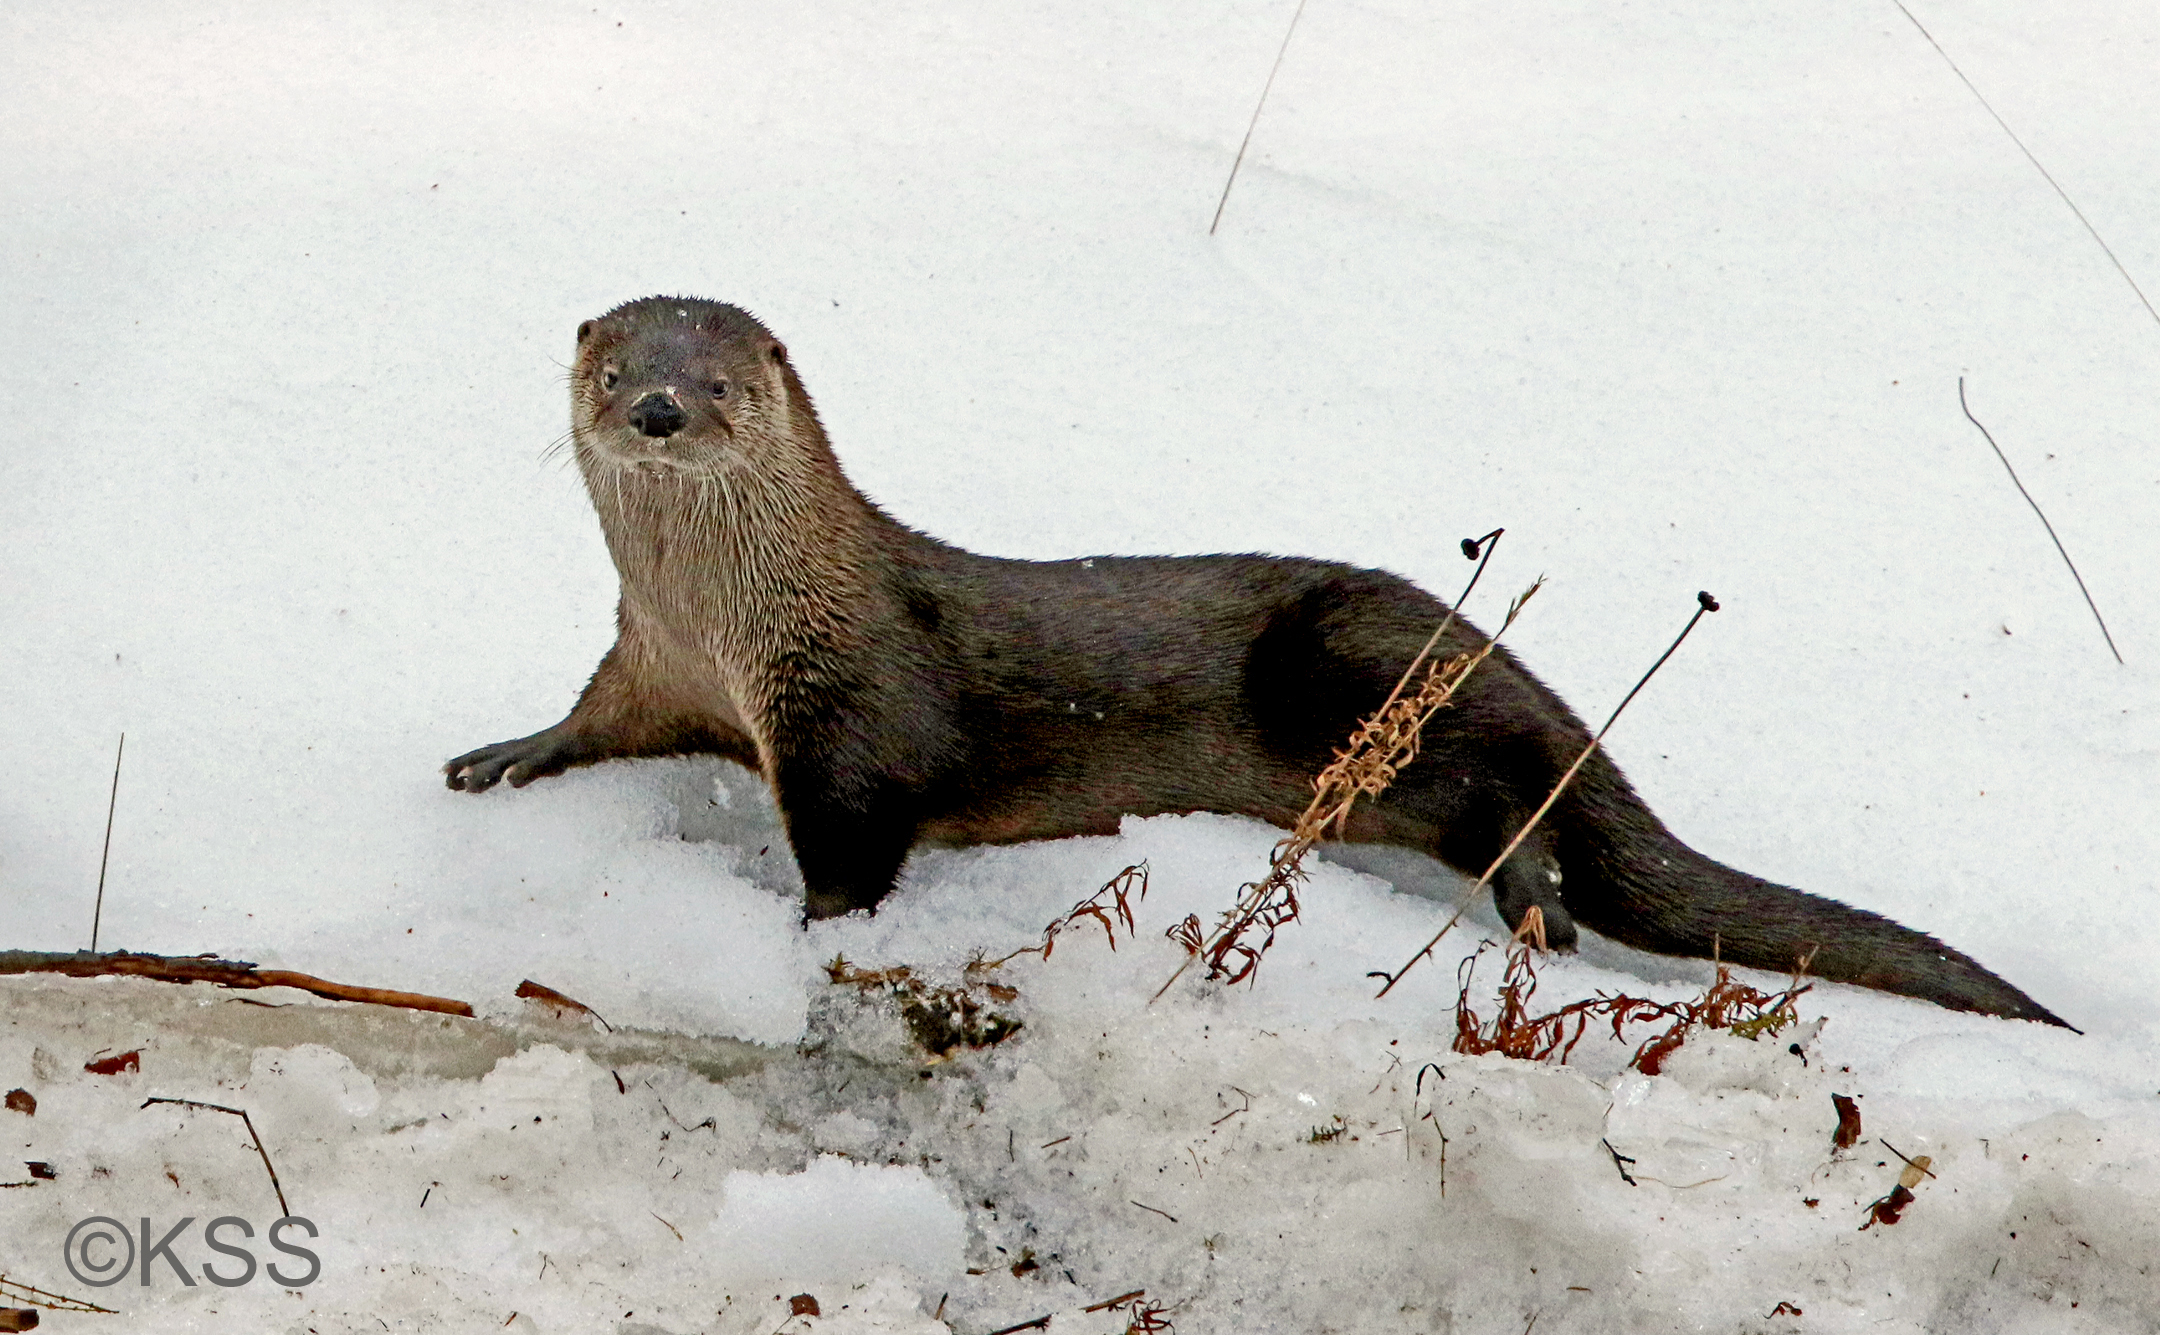 The Week of the River Otters - Nature Photography